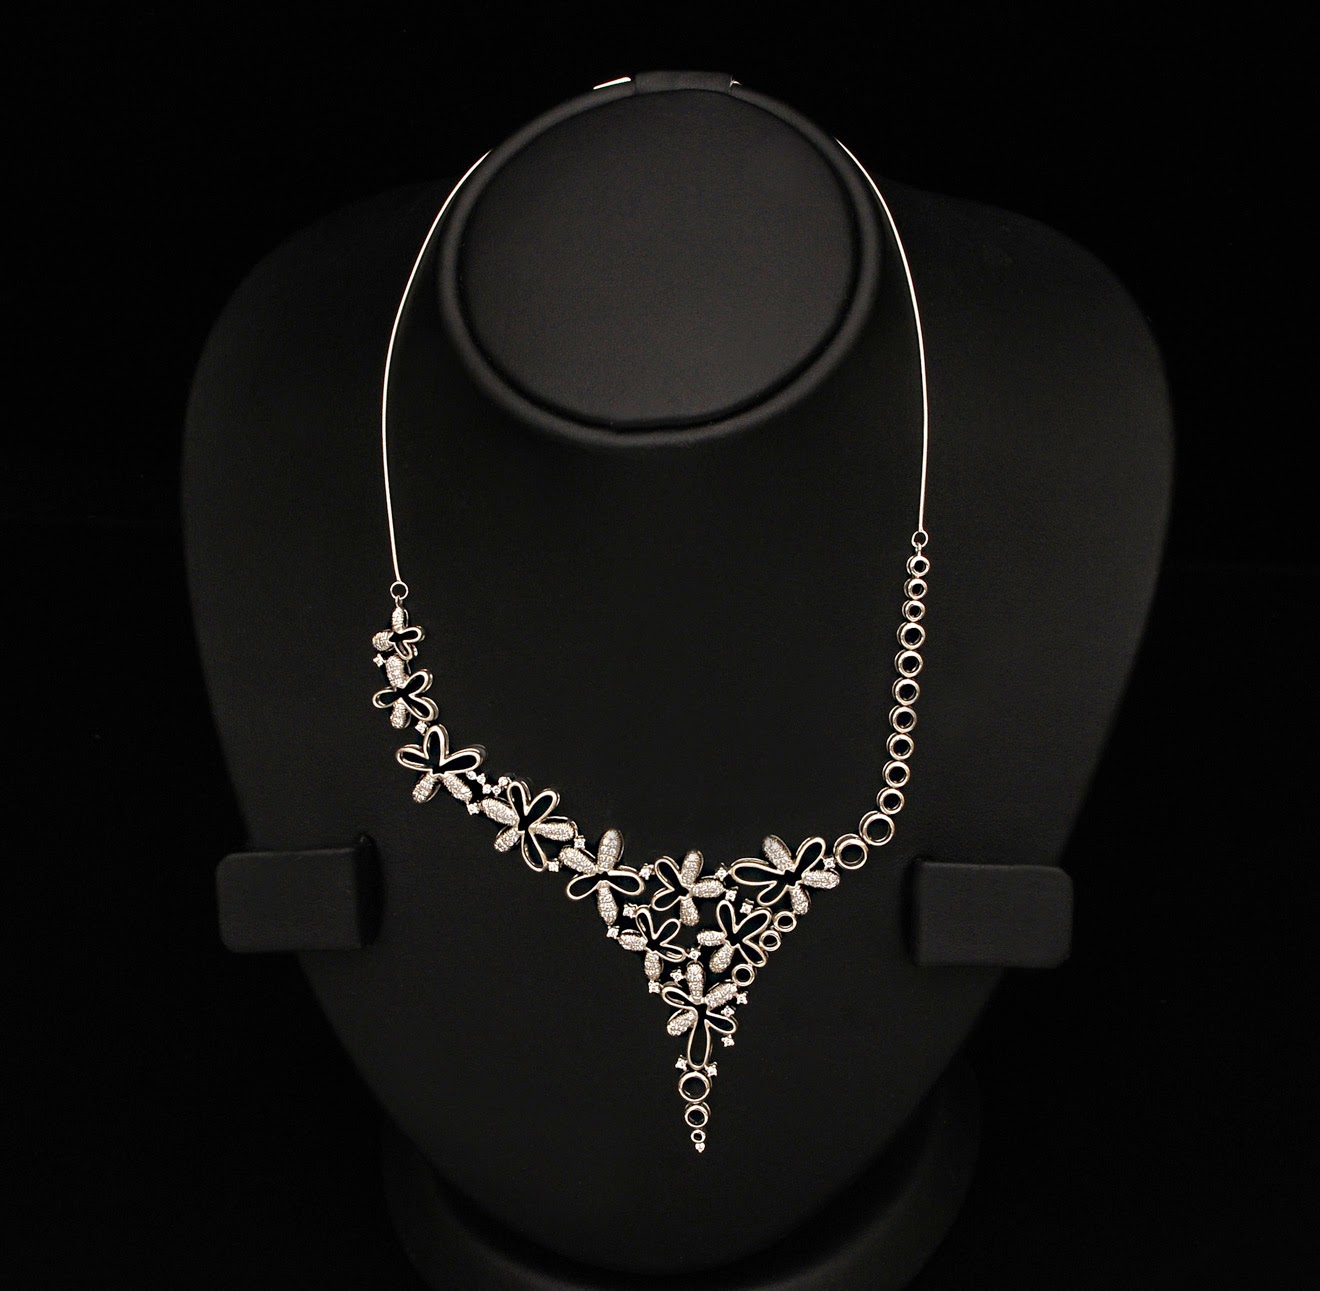 VBJ Platinum Necklace Designs